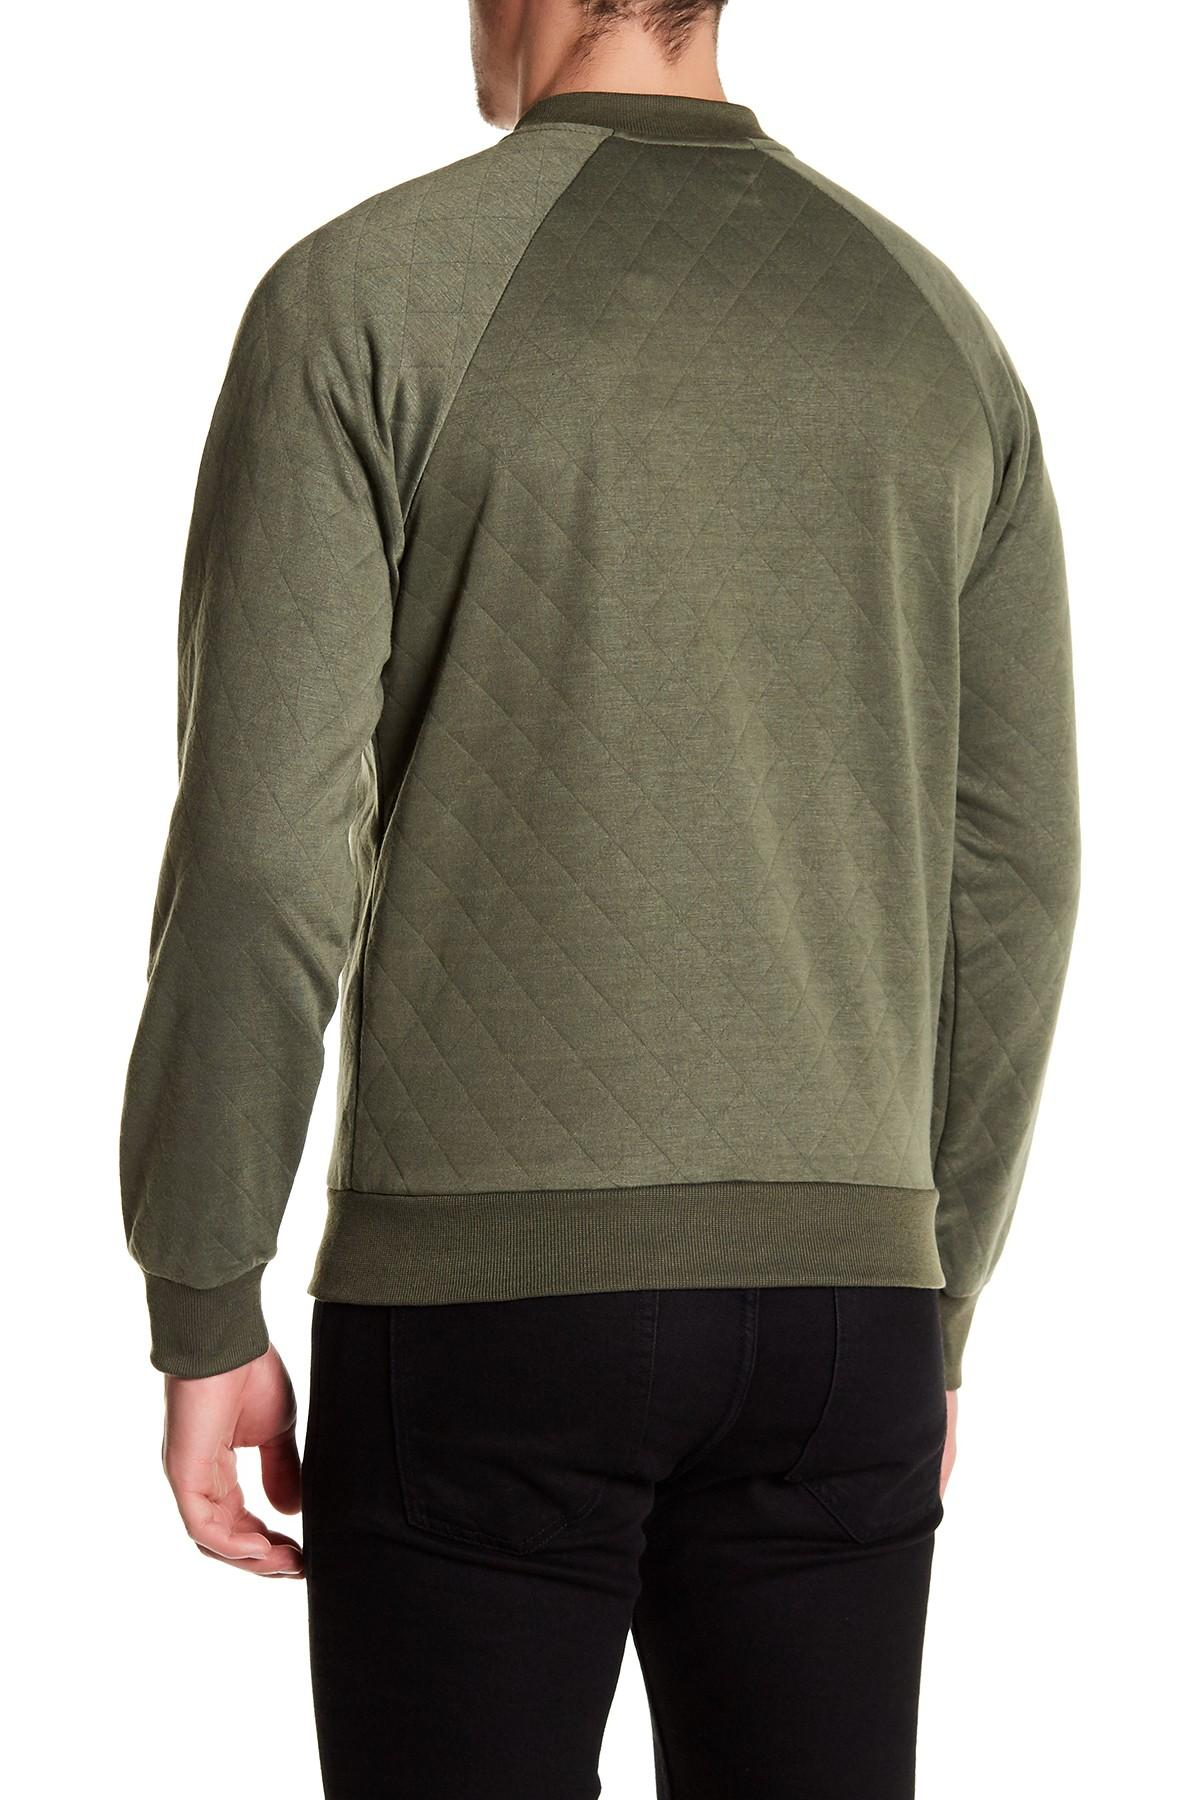 Sovereign Code Princeton Quilted Jacket In Green For Men